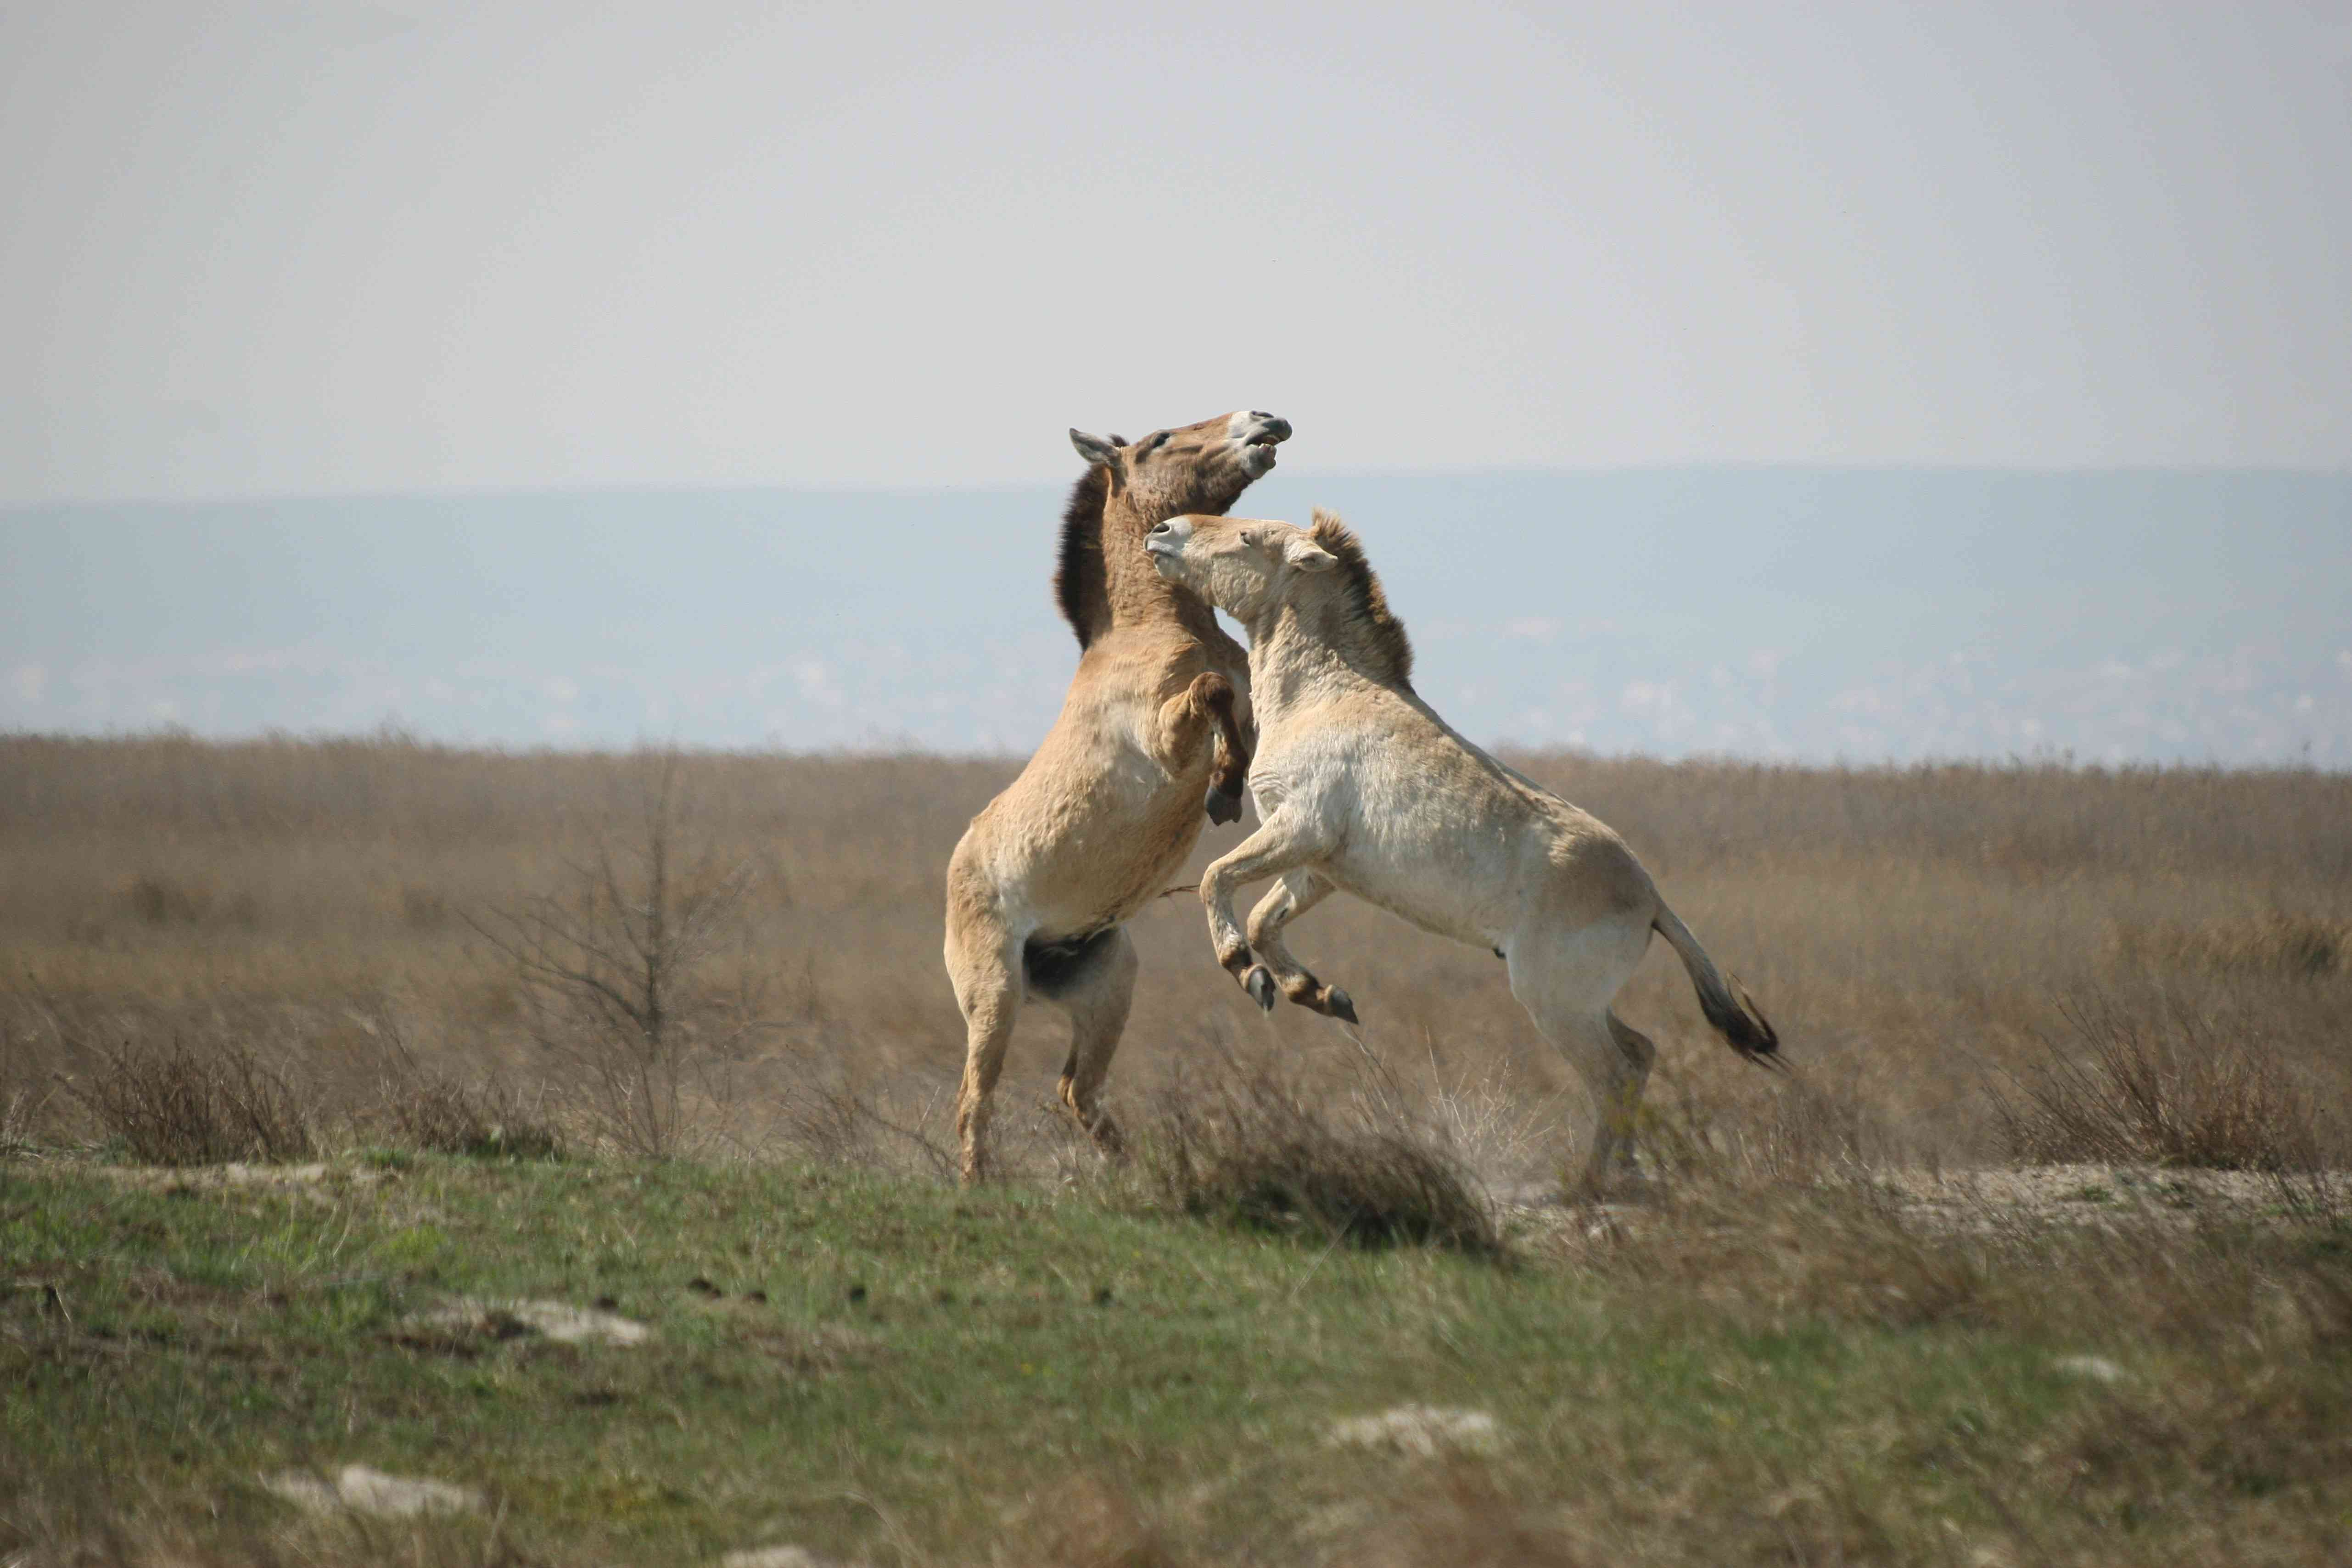 Two young Przewalski's horse stallions playing in the steppes of central Asia